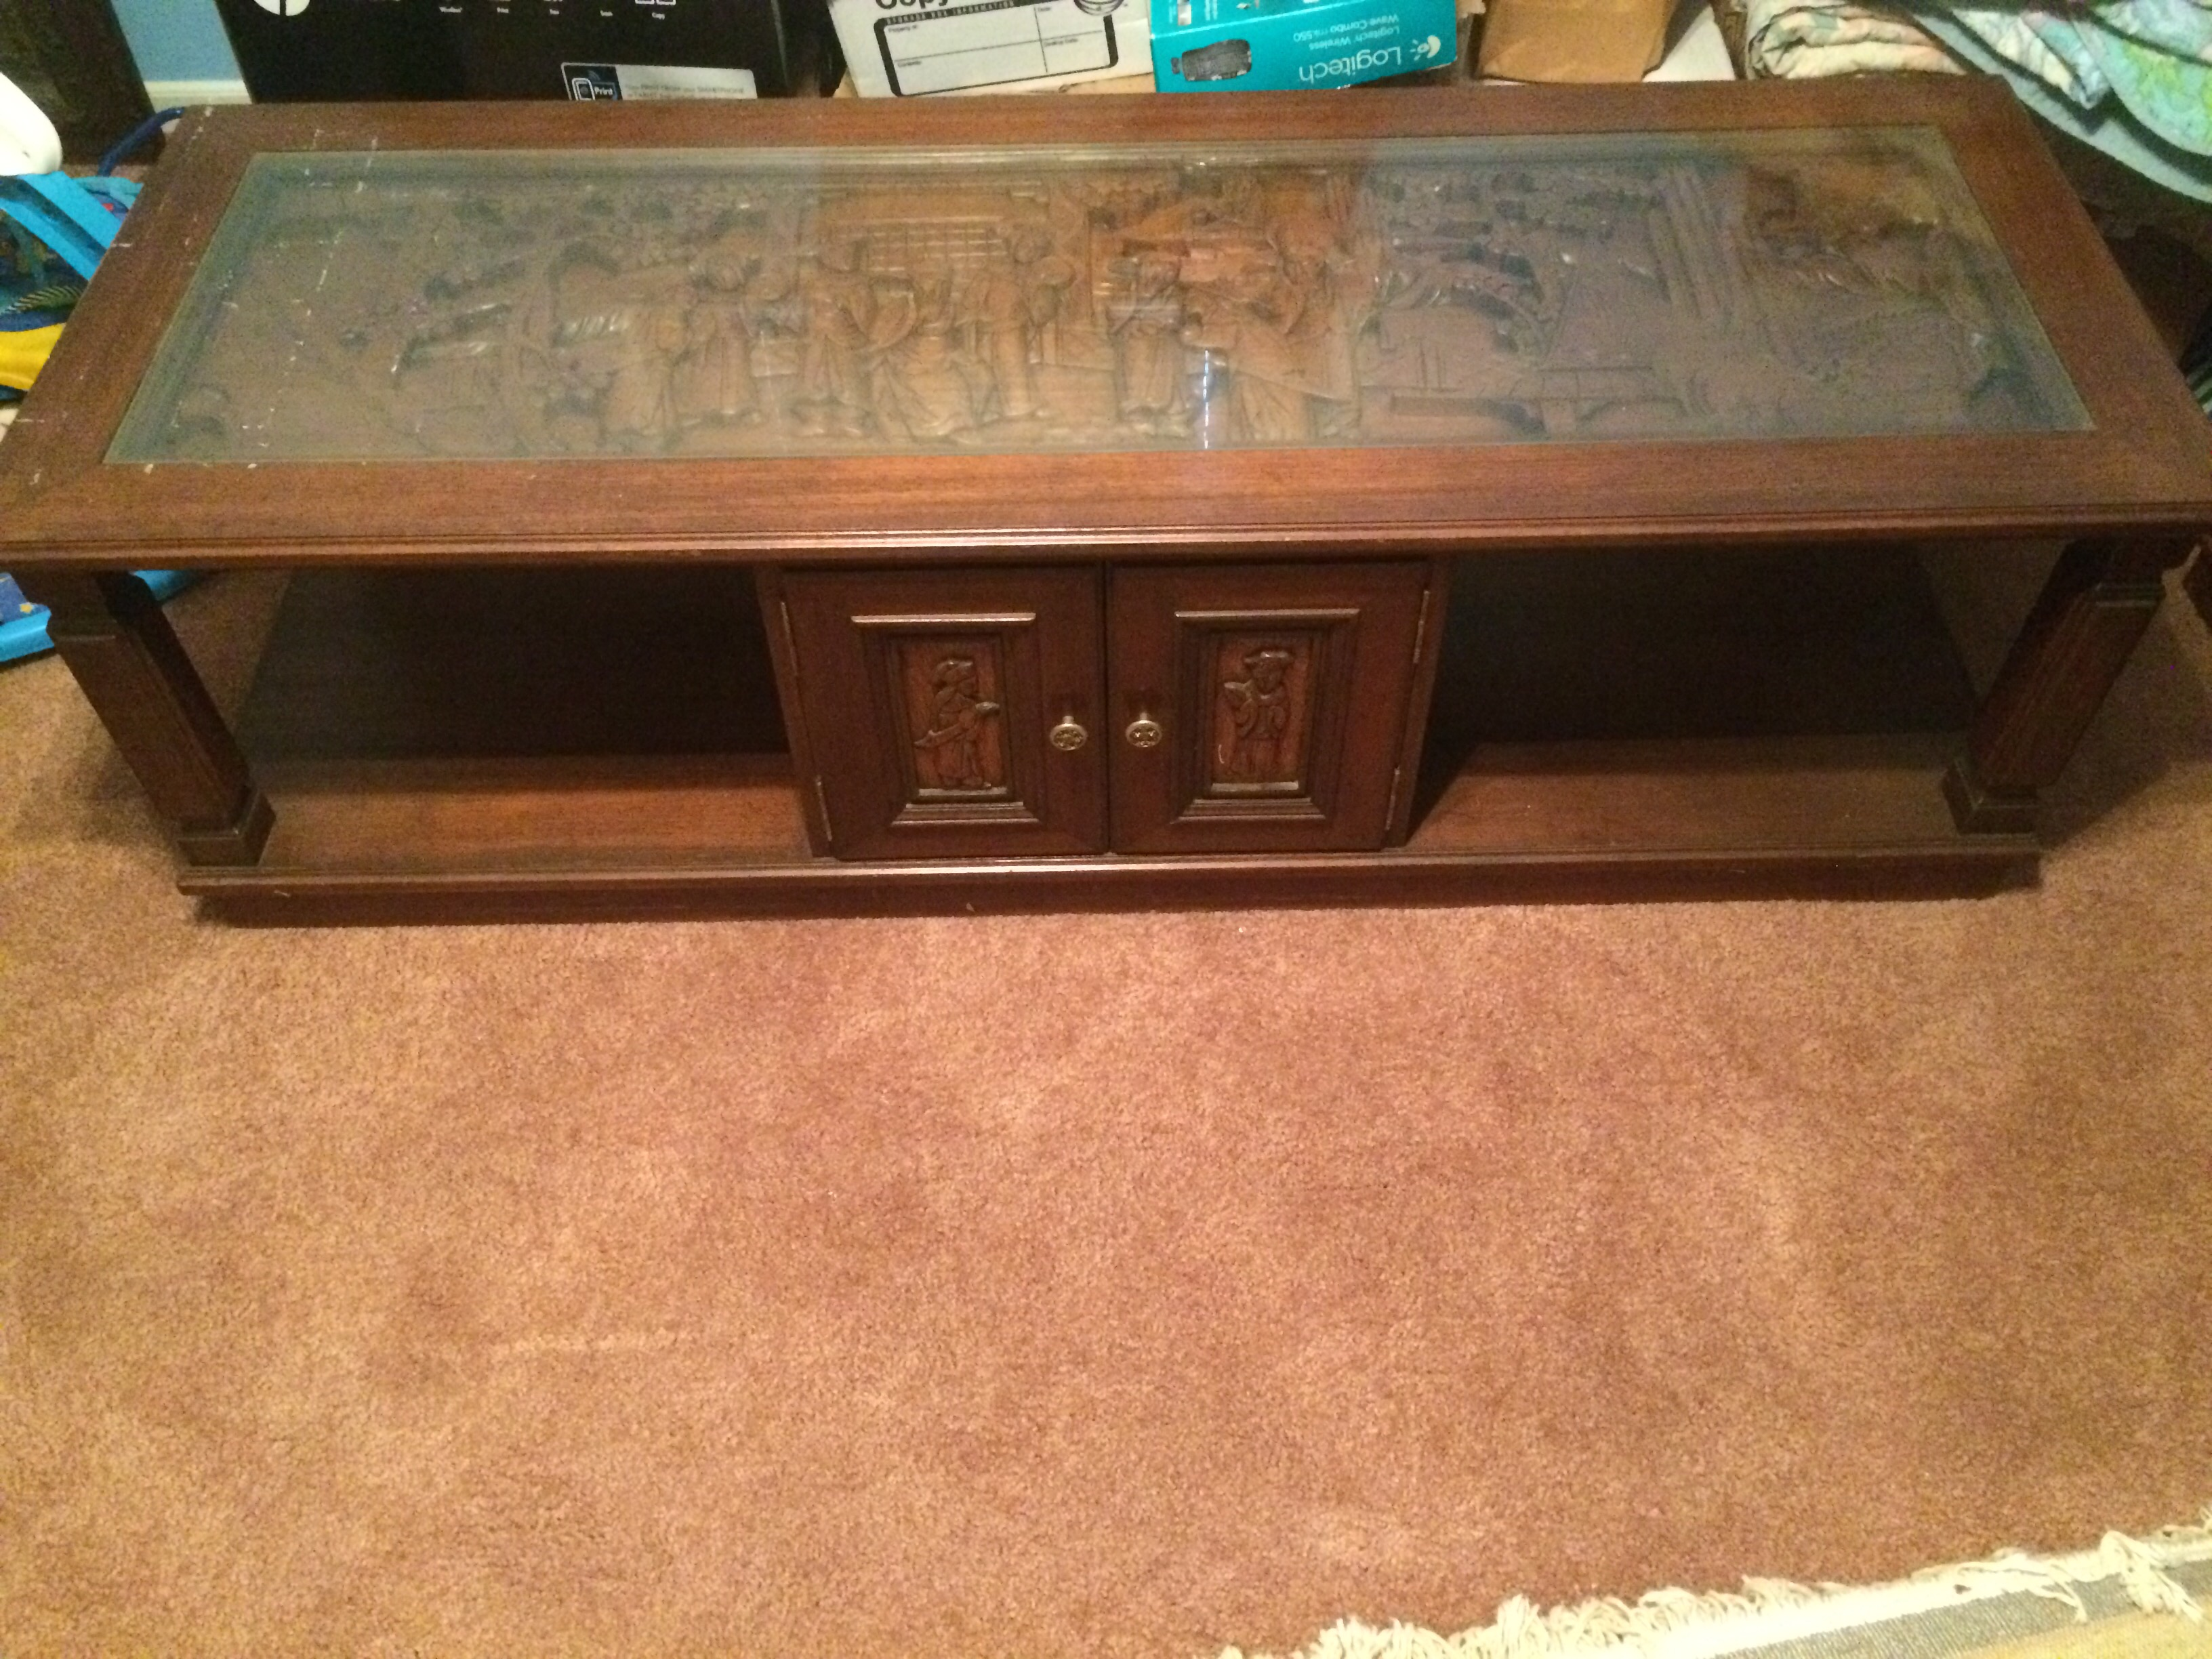 vintage ese carved teak coffee table and end tables antique ashley promo the row furniture small modern black sofa wood light oak bedside ethan allen dining outdoor wicker patio